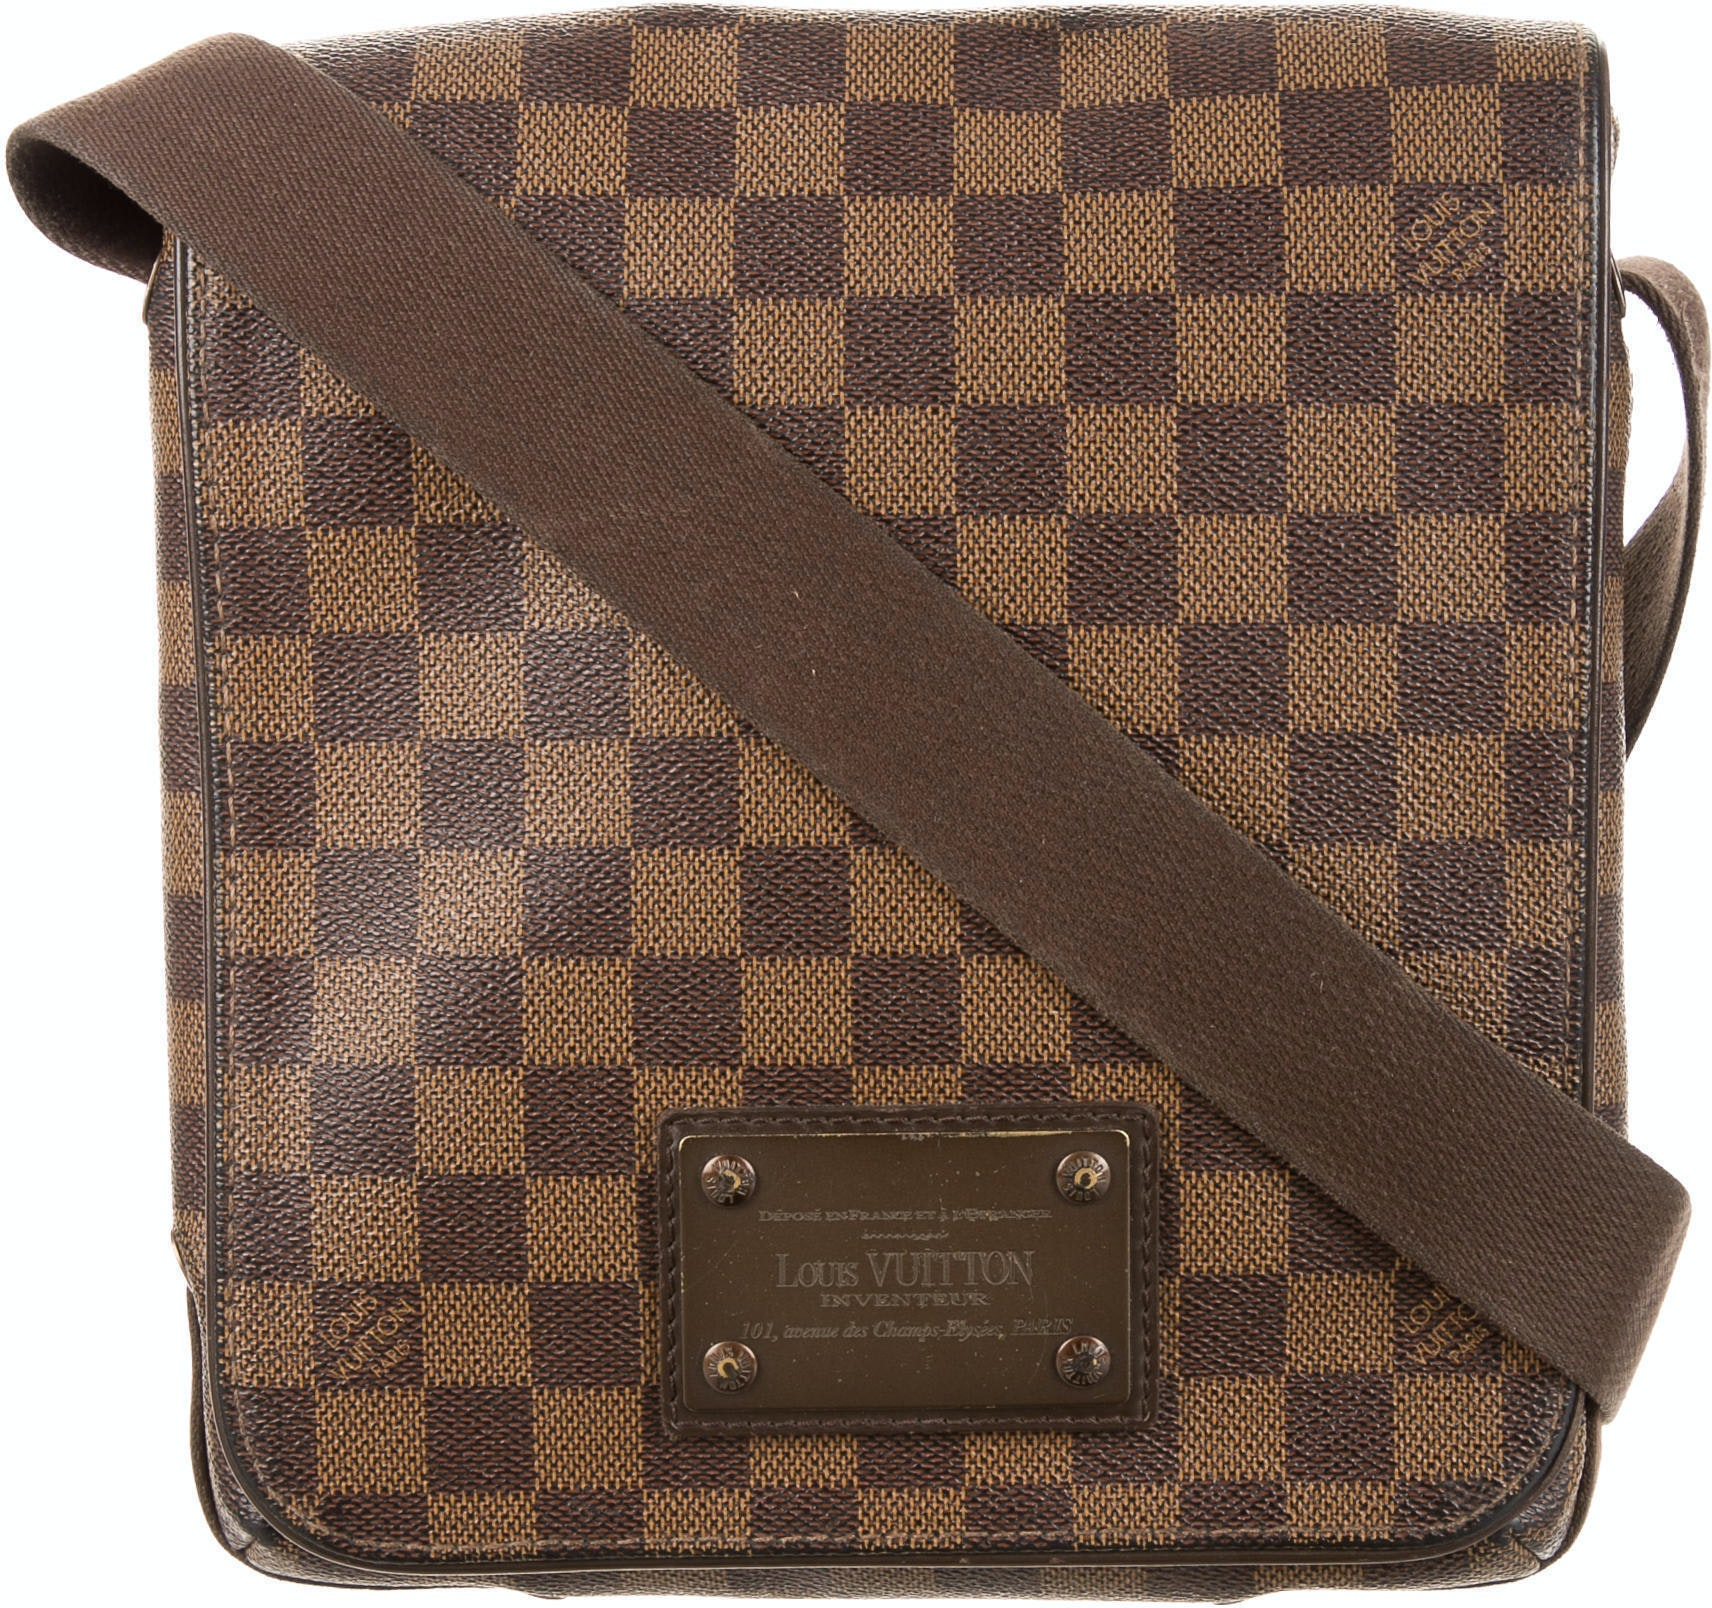 Louis Vuitton Messenger Brooklyn Damier Ebene PM Brown